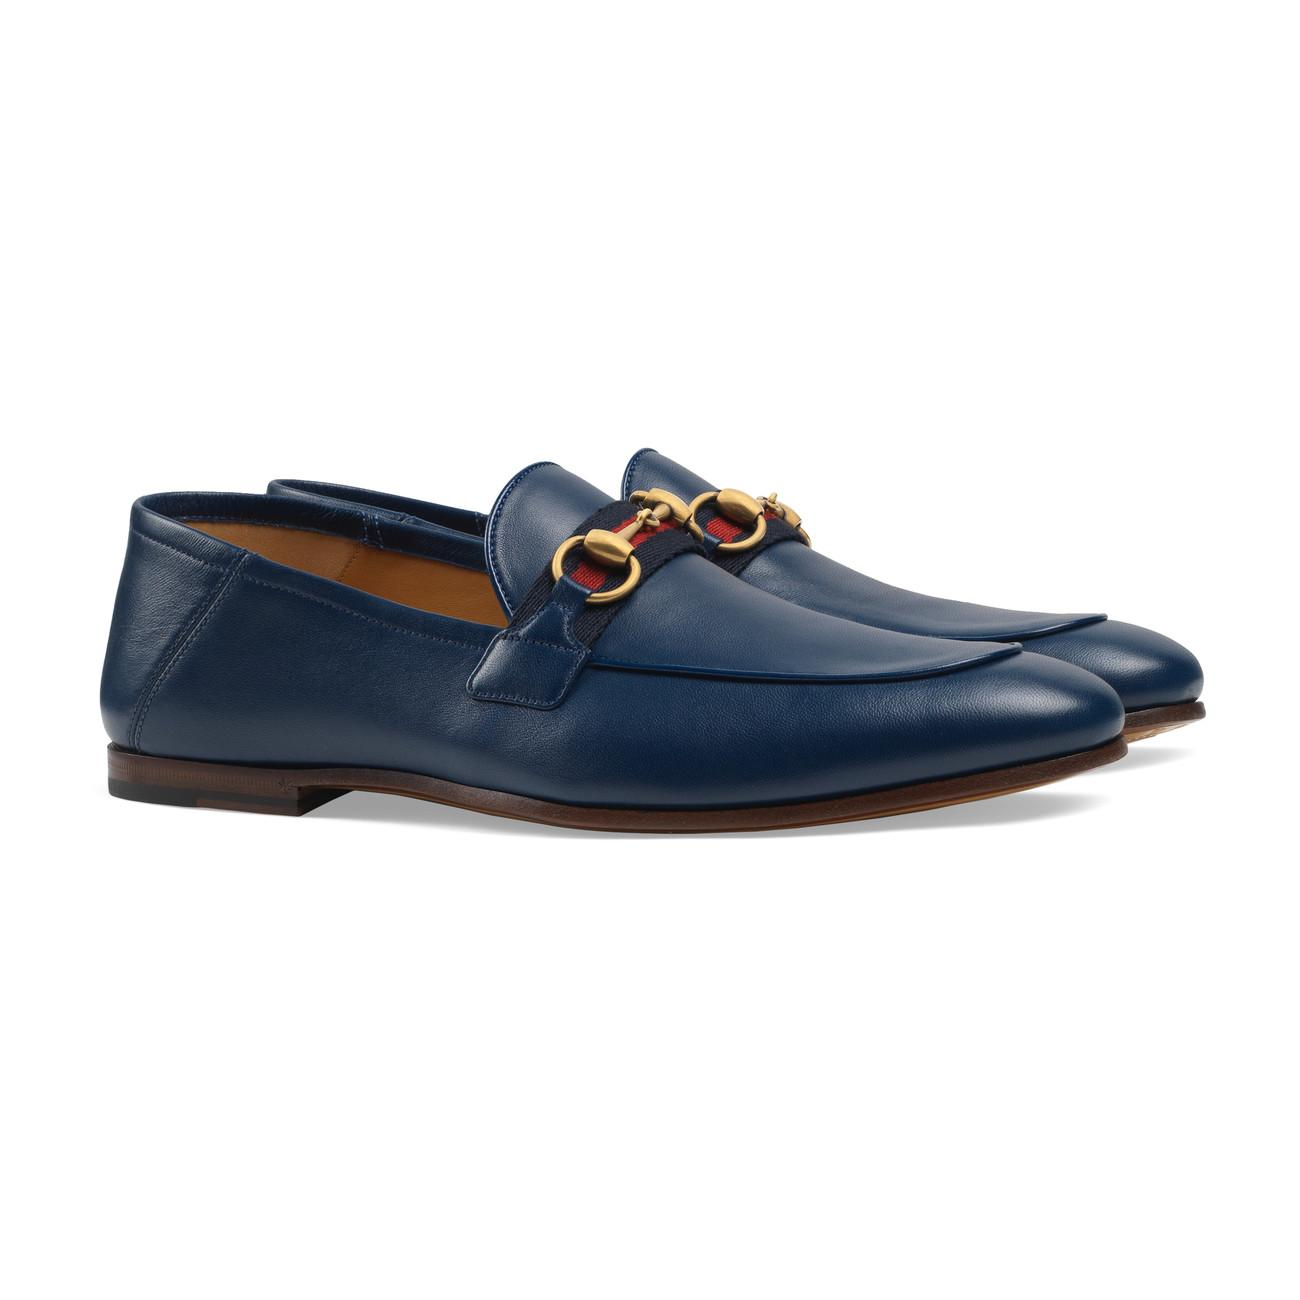 a032048c6 Gucci - Blue Men's Leather Horsebit Loafer With Web for Men - Lyst. View  fullscreen